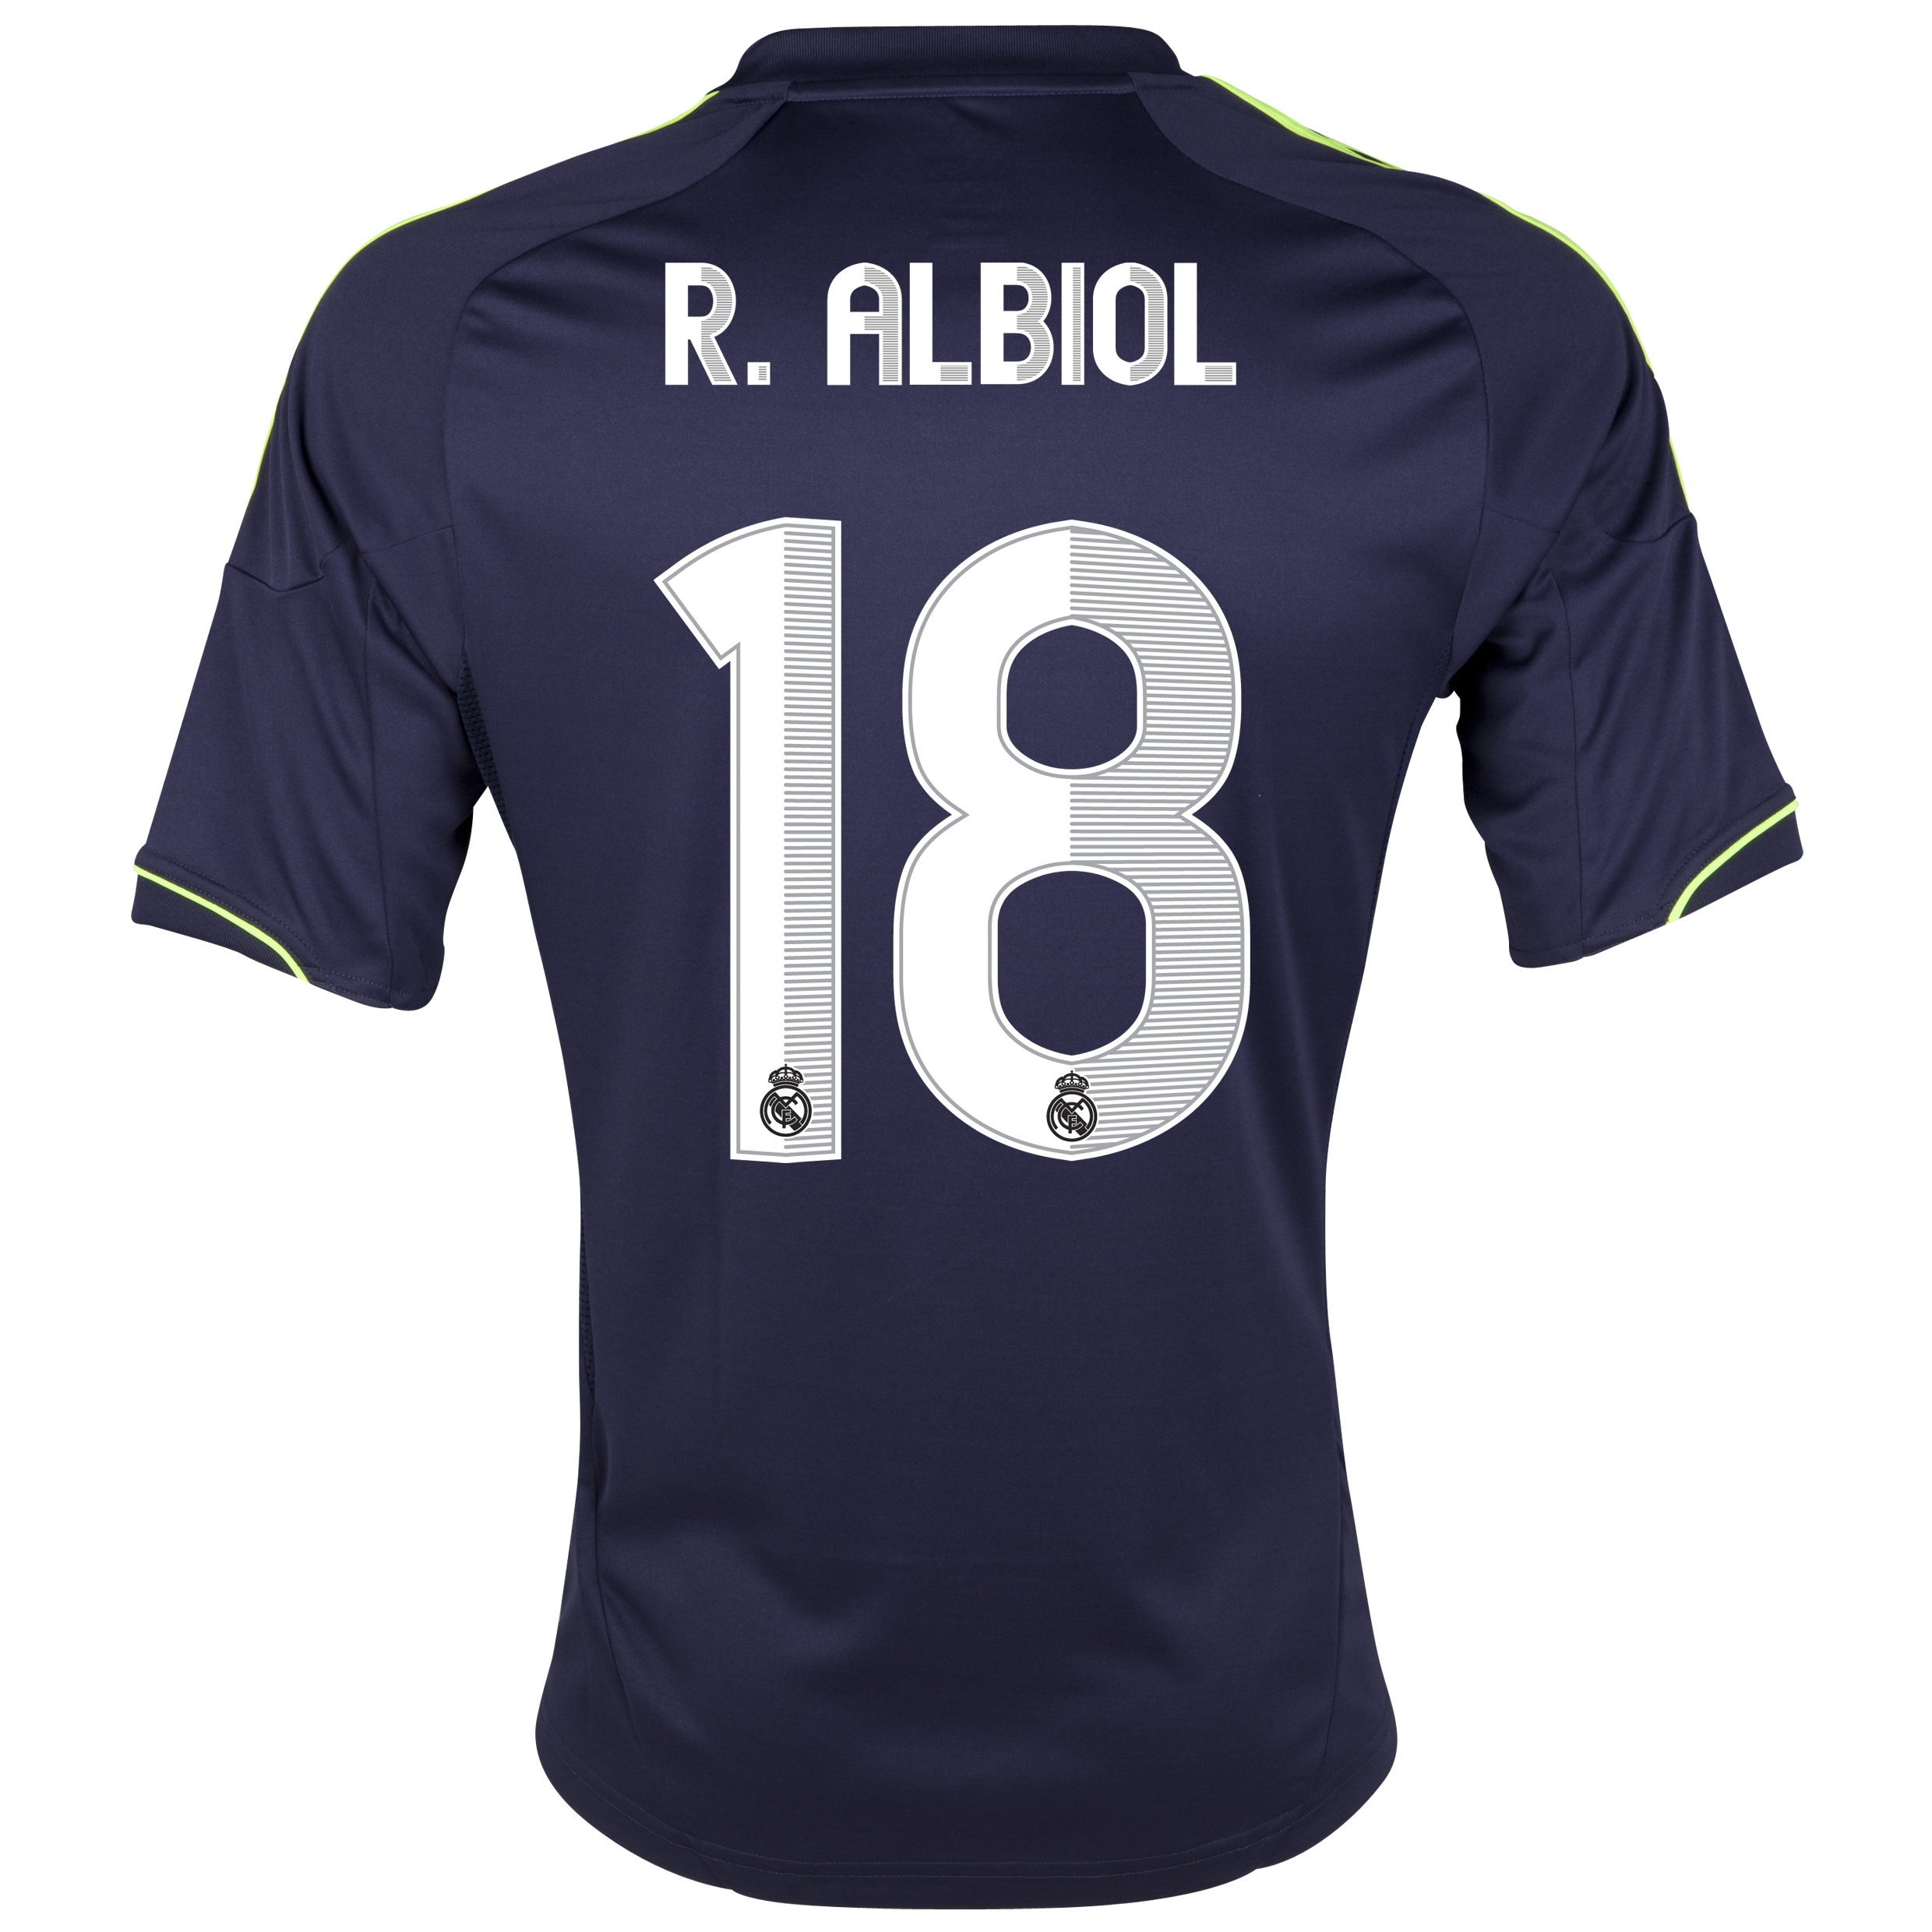 Camiseta visitante Real Madrid 2012/13 con impresin 18 R.Albiol - Nio